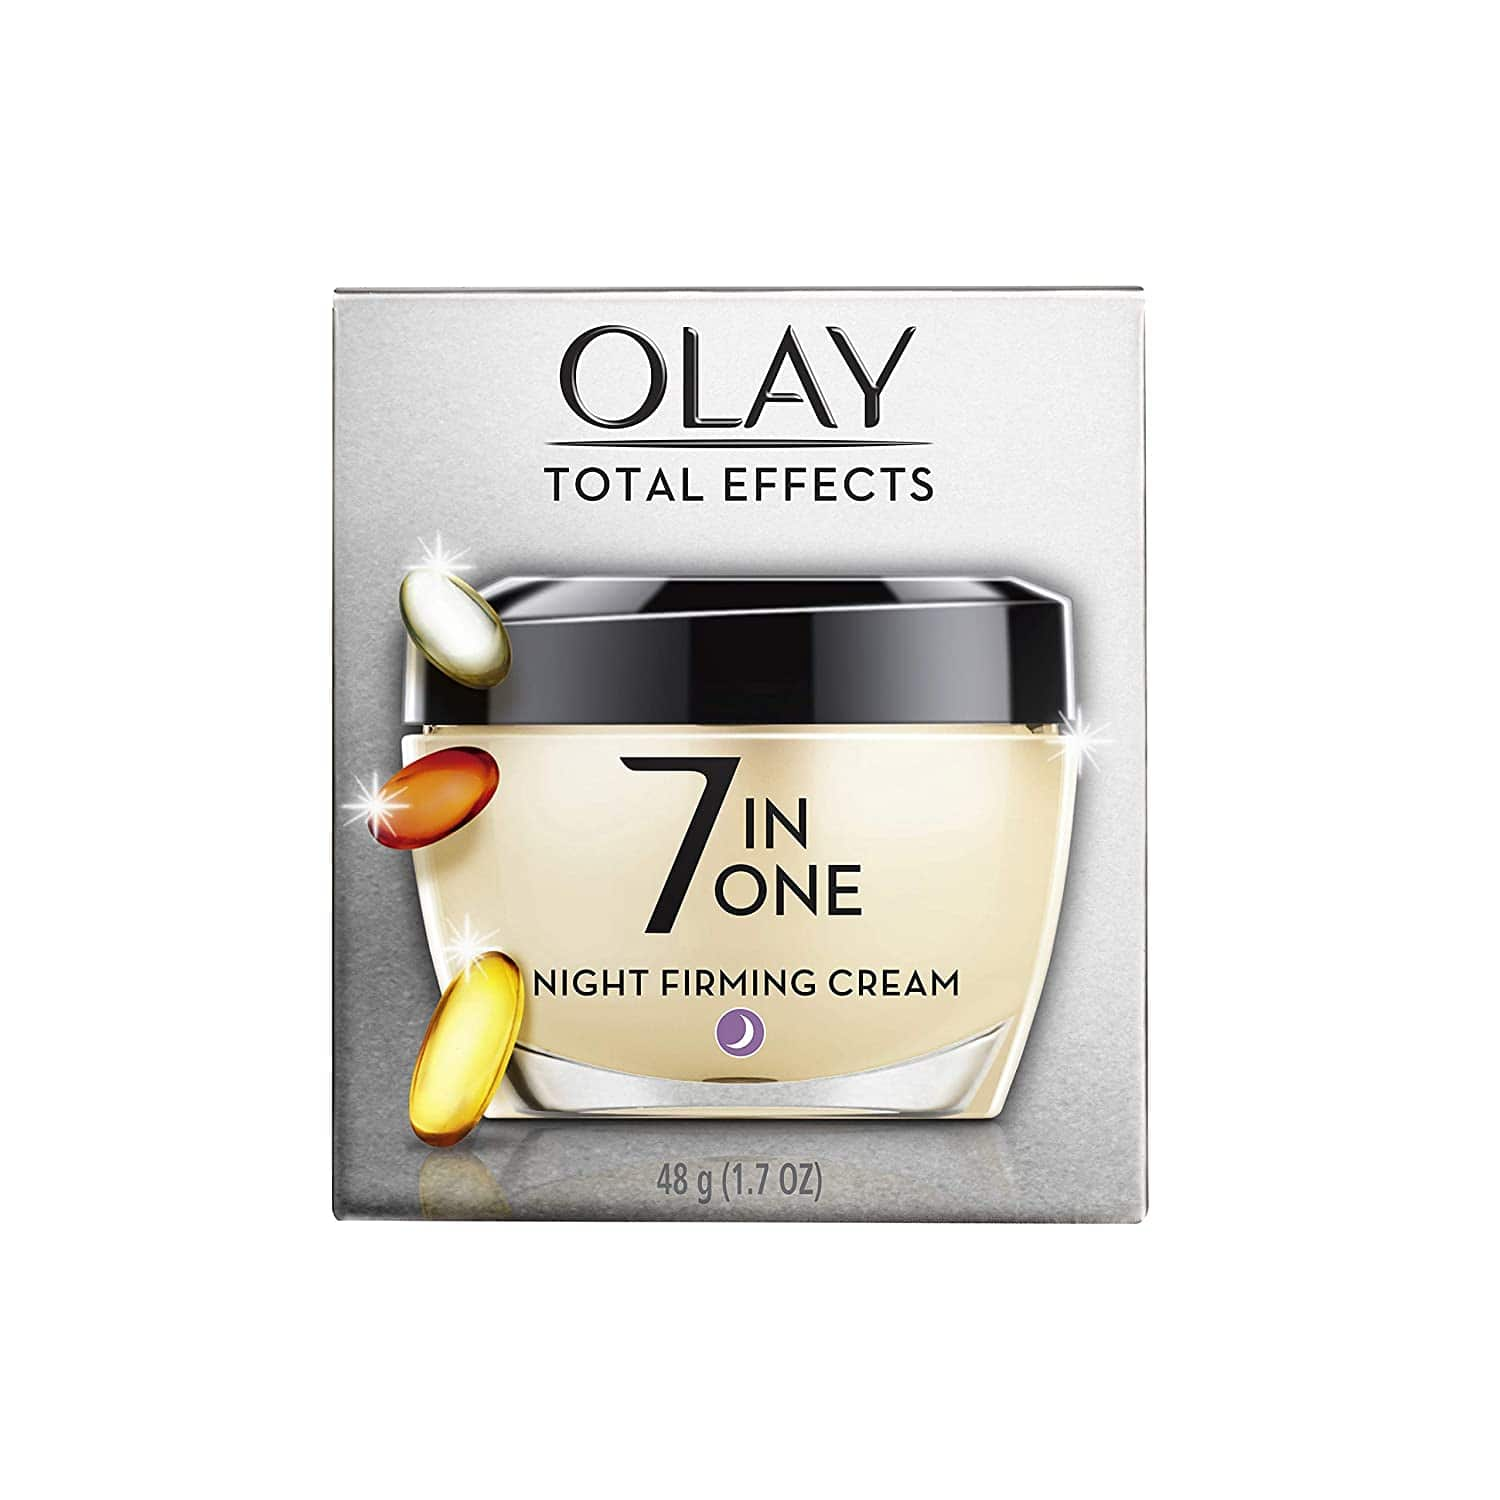 1.7-Oz Olay Total Effects 7-in-1 Anti-Aging Night Firming Cream $12.50 + Free Shipping w/ Prime or $25+